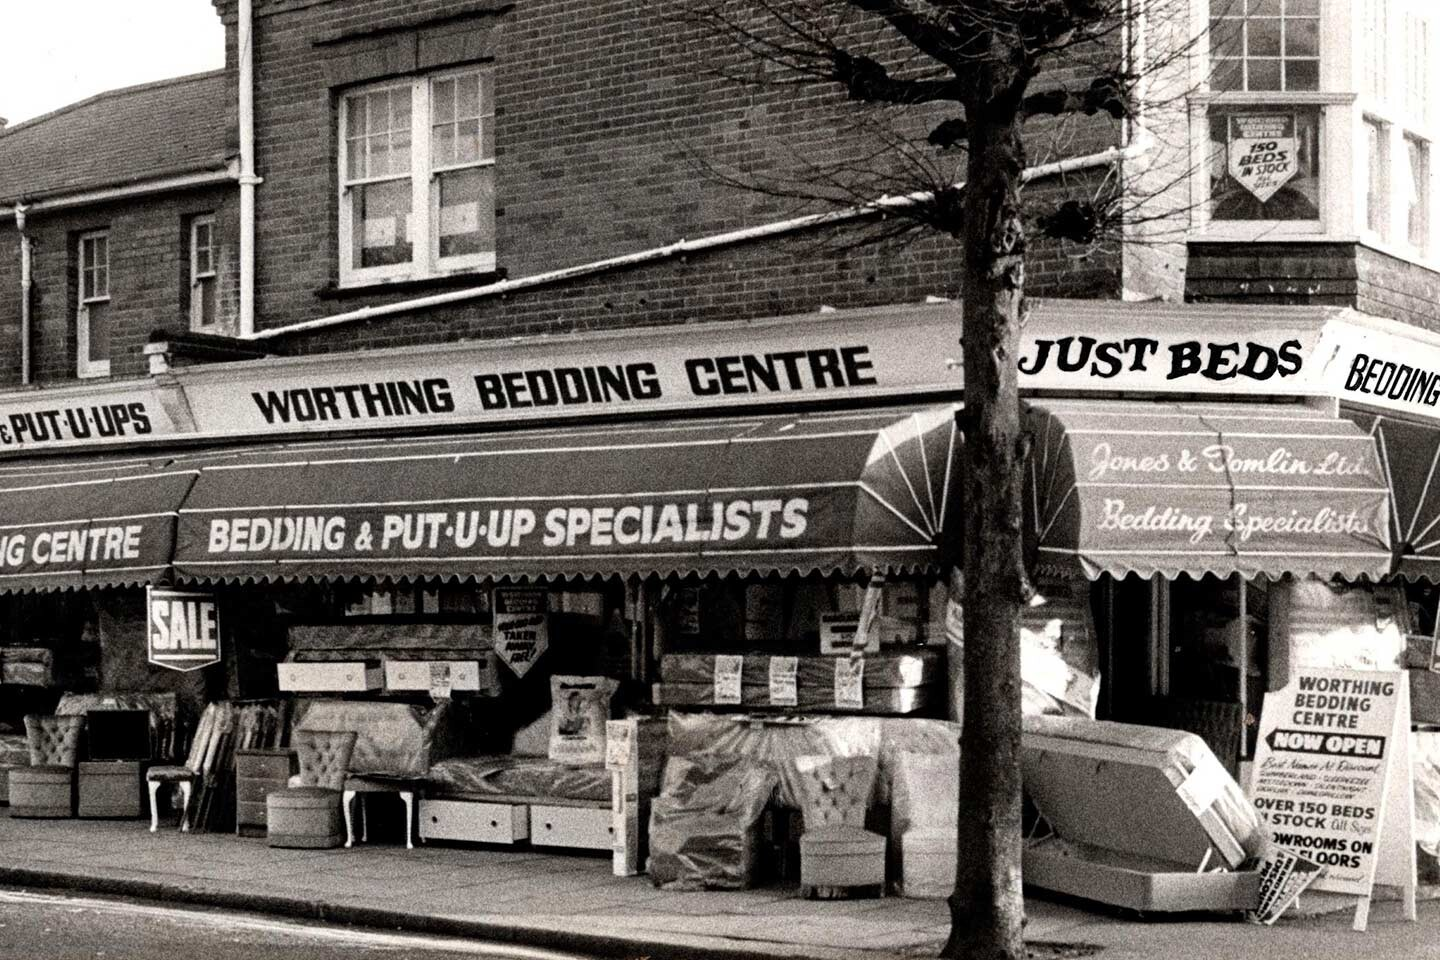 worthing-bedding-centre-olden-times